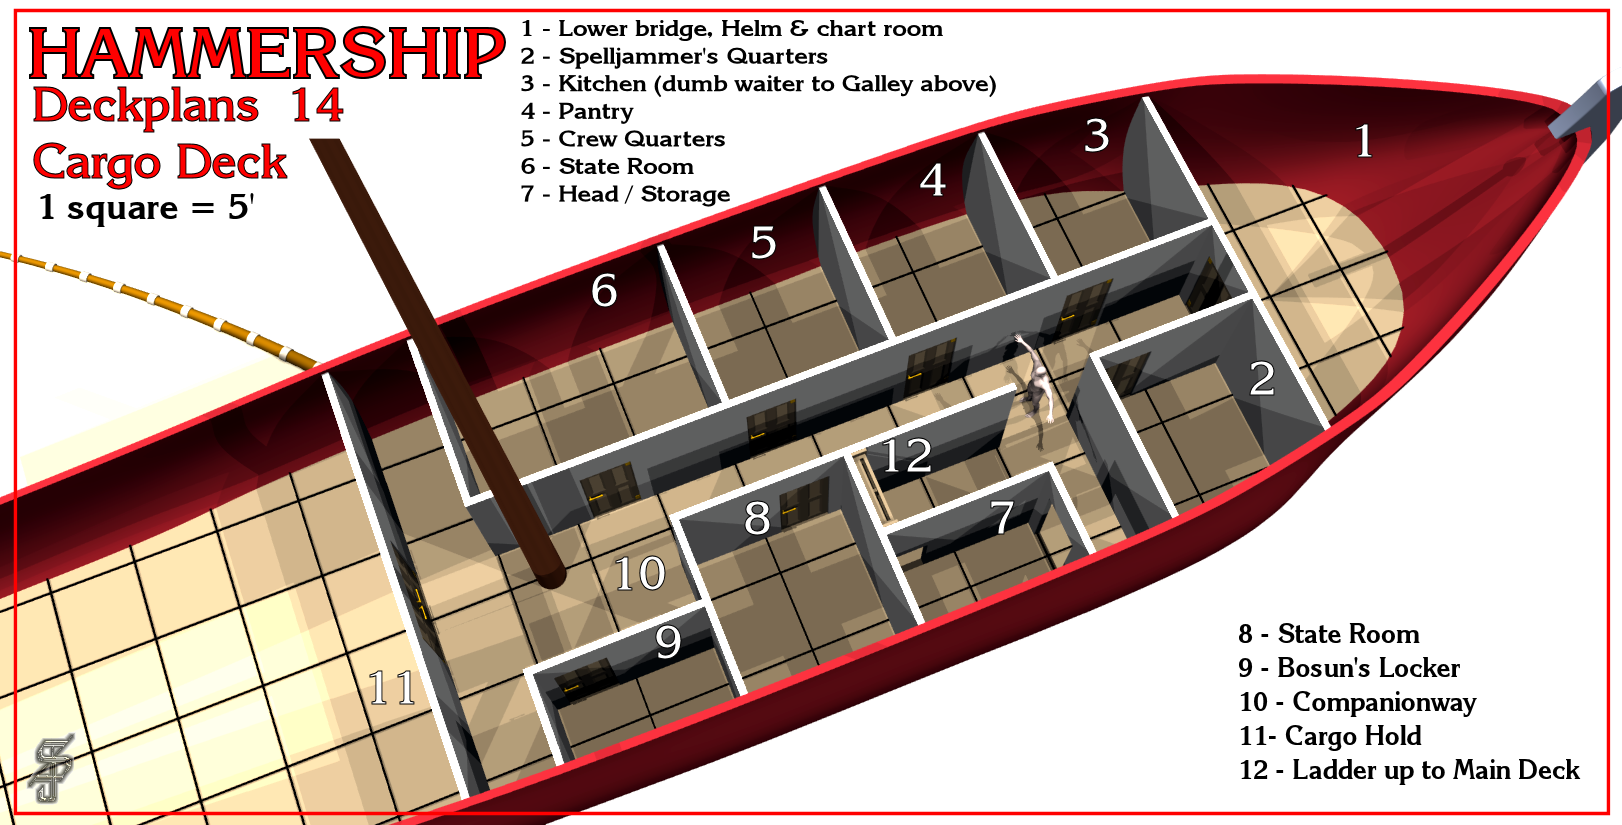 hammership_layout_14.png